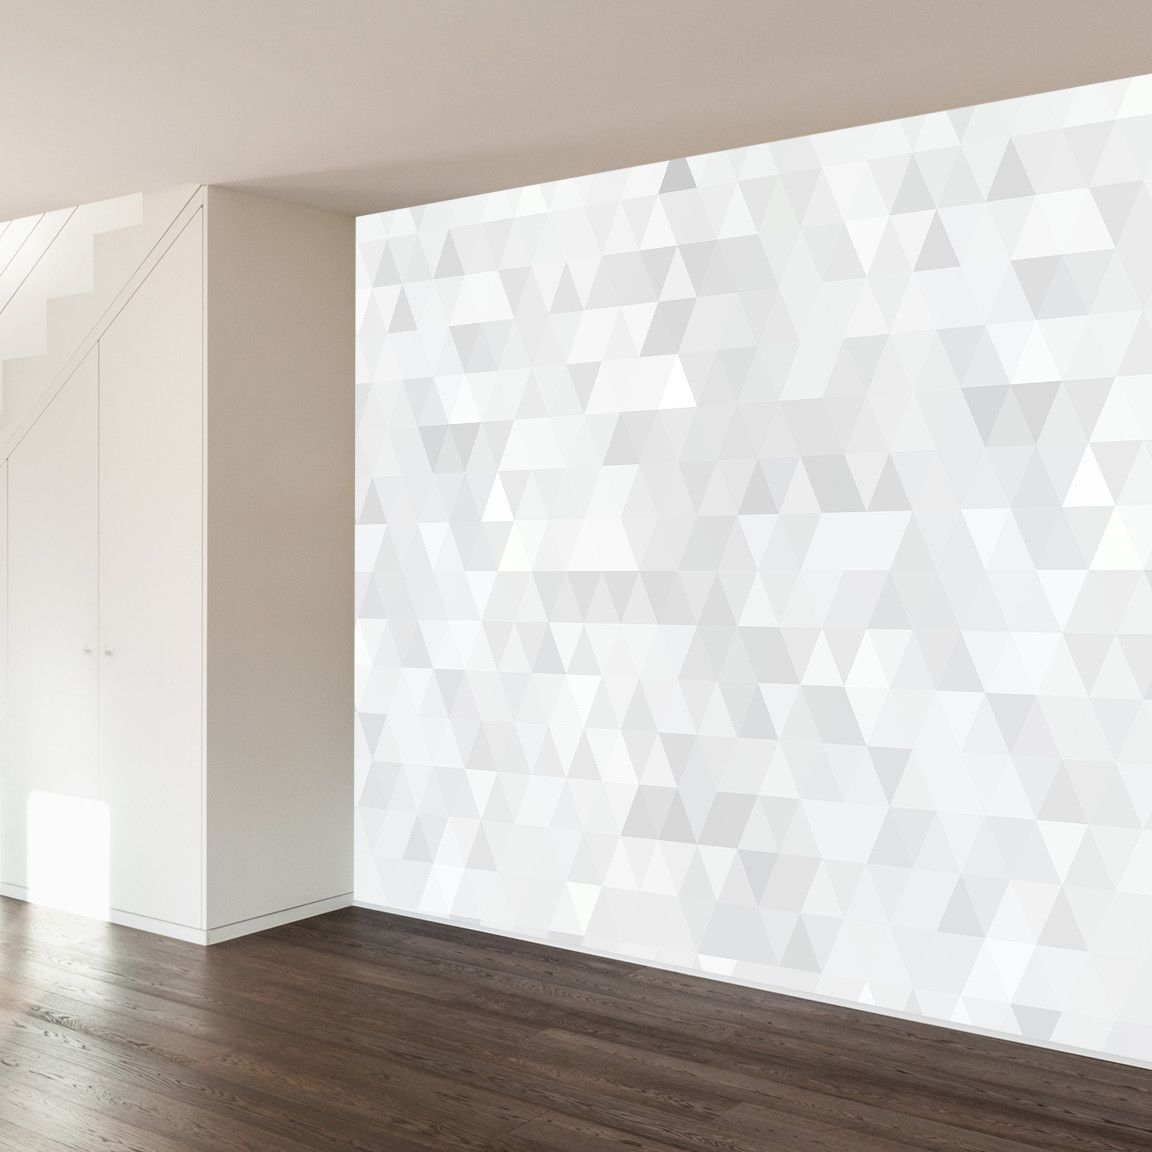 another wall paper option -Wall Murals from WallsNeedLove   lifestyle